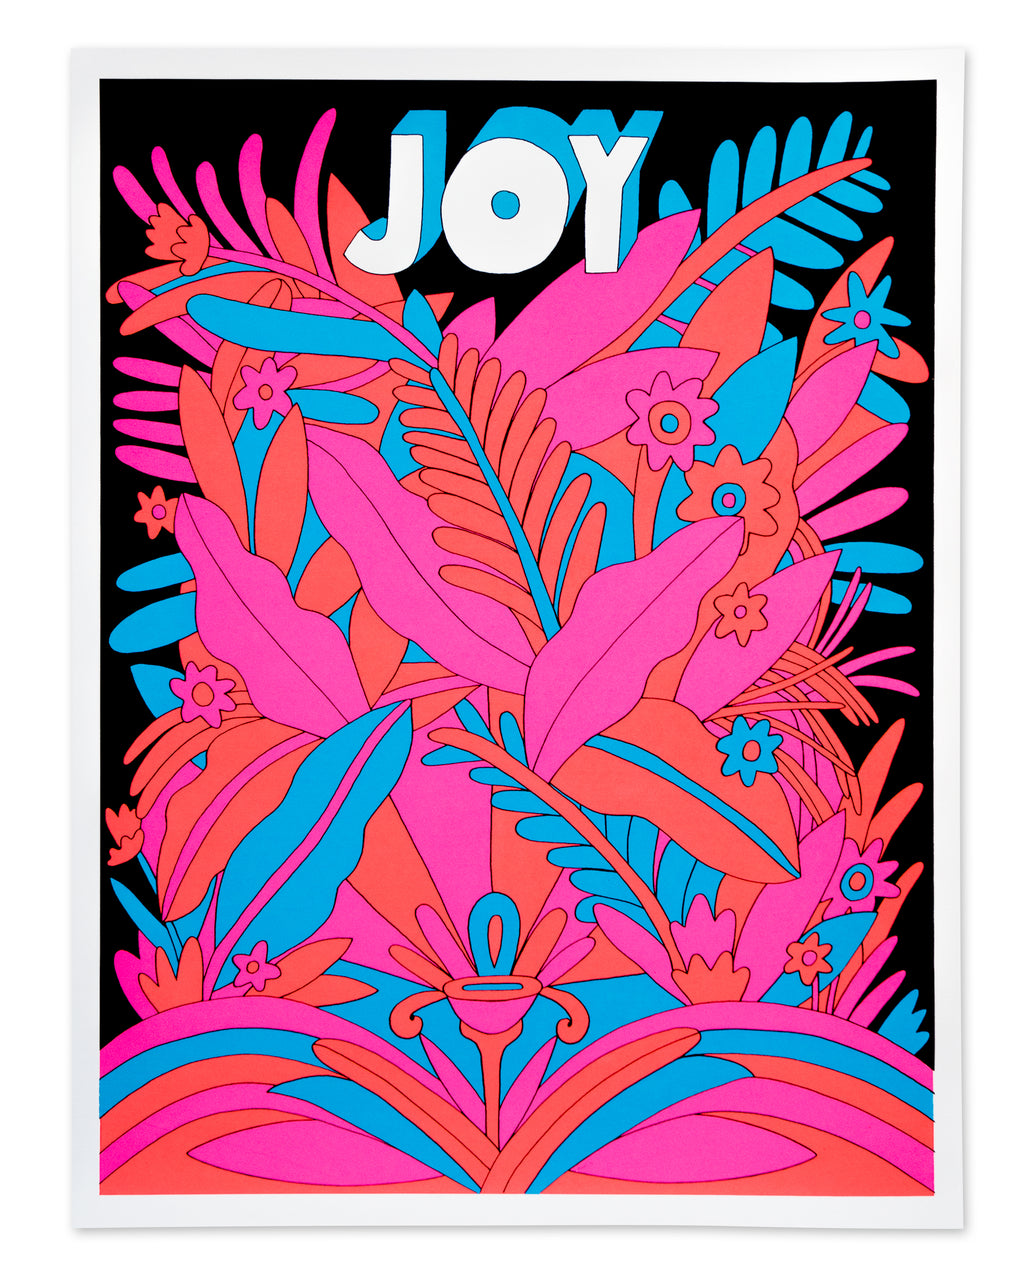 Black Light Poster - Lea Carey